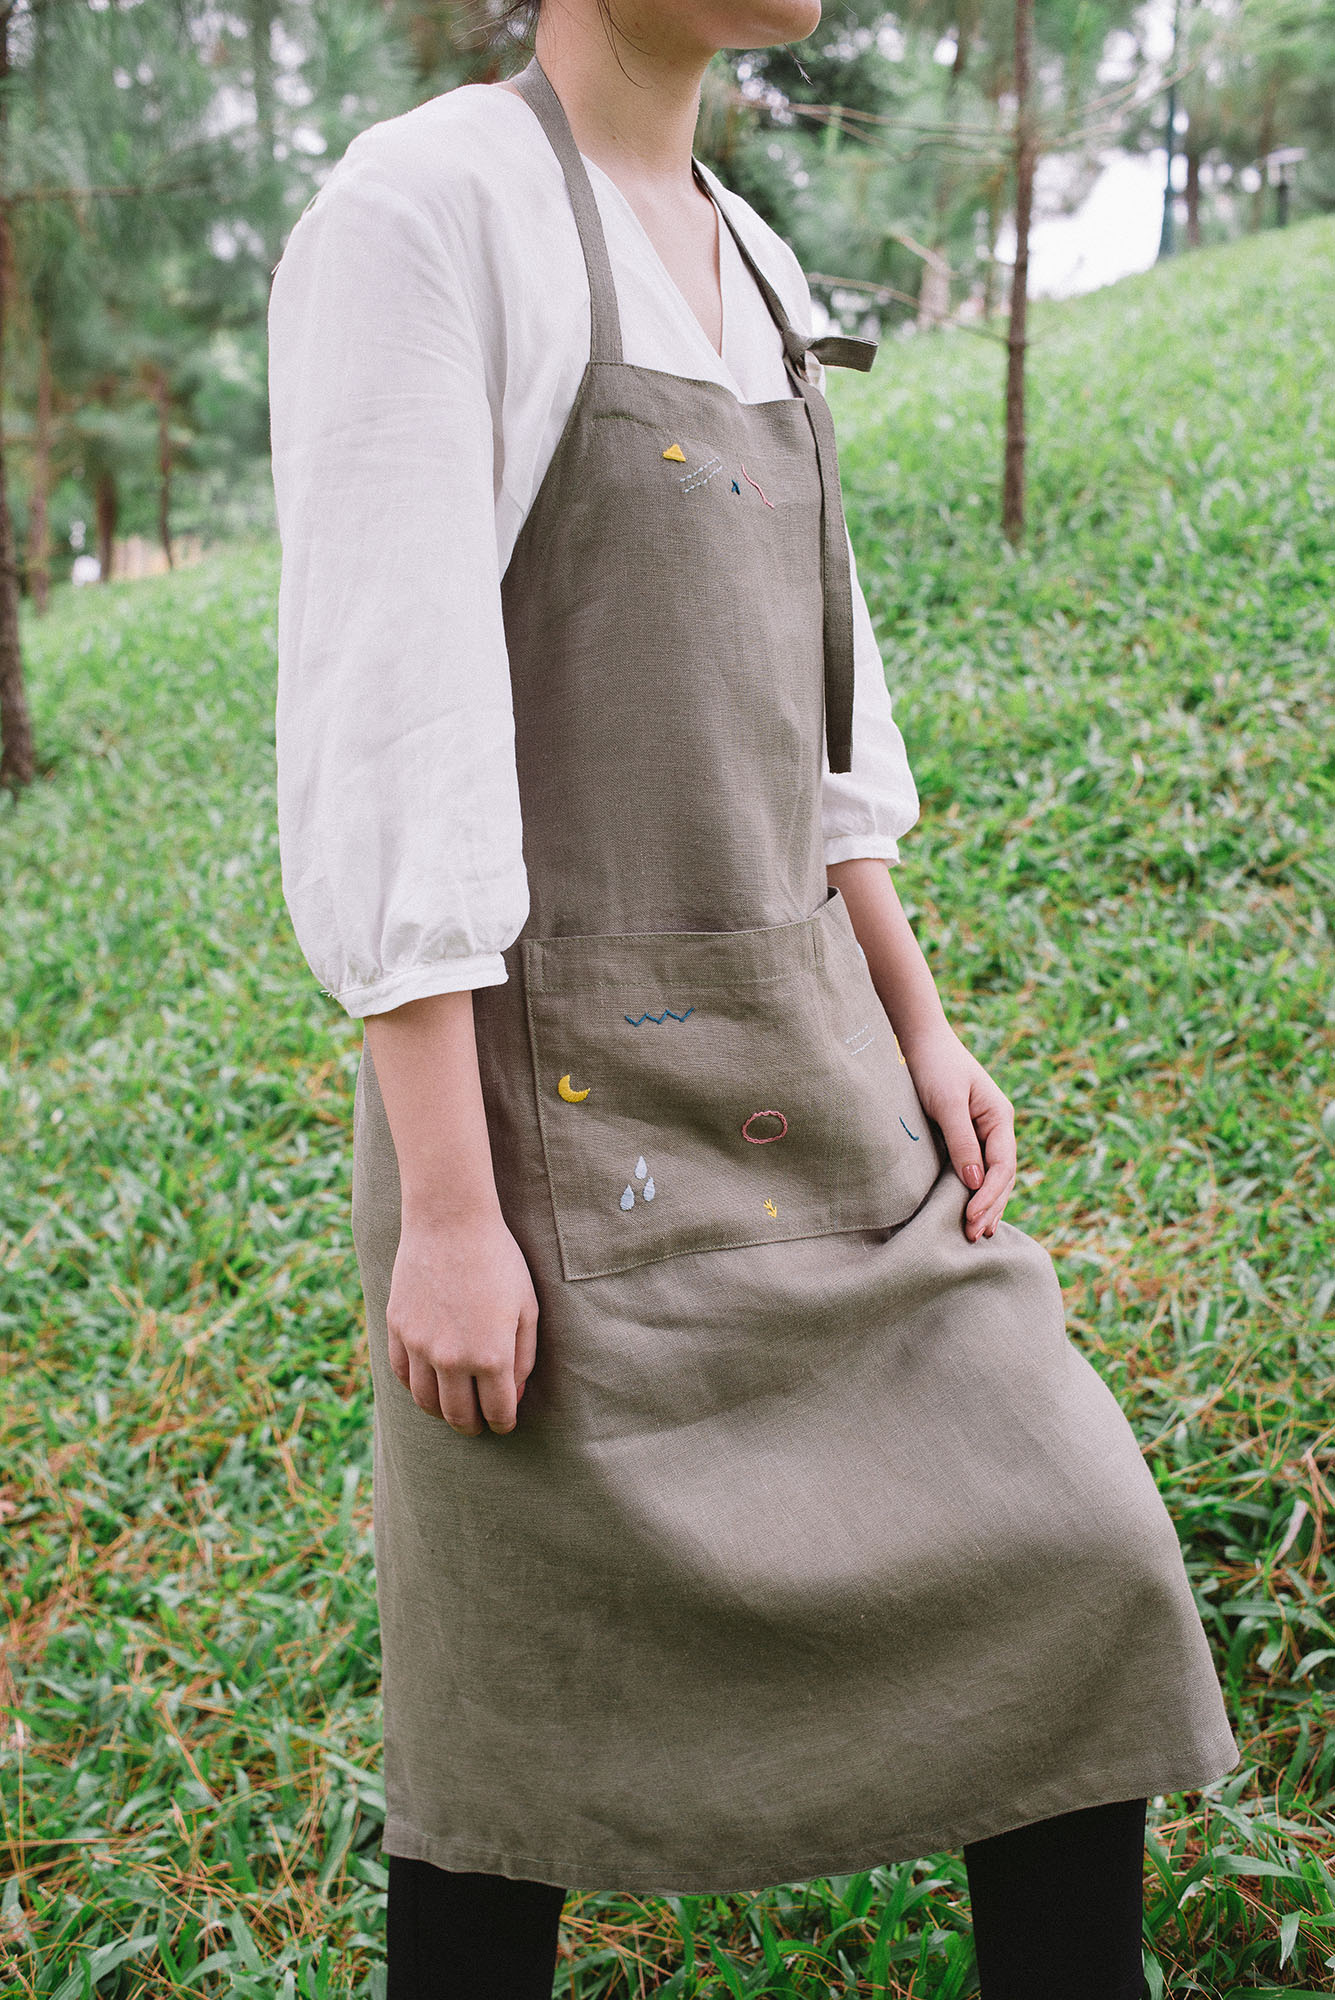 [sold]   Playful apron No.2 / $25   Material: Linen  Colour: Olive  Hand wash for best result